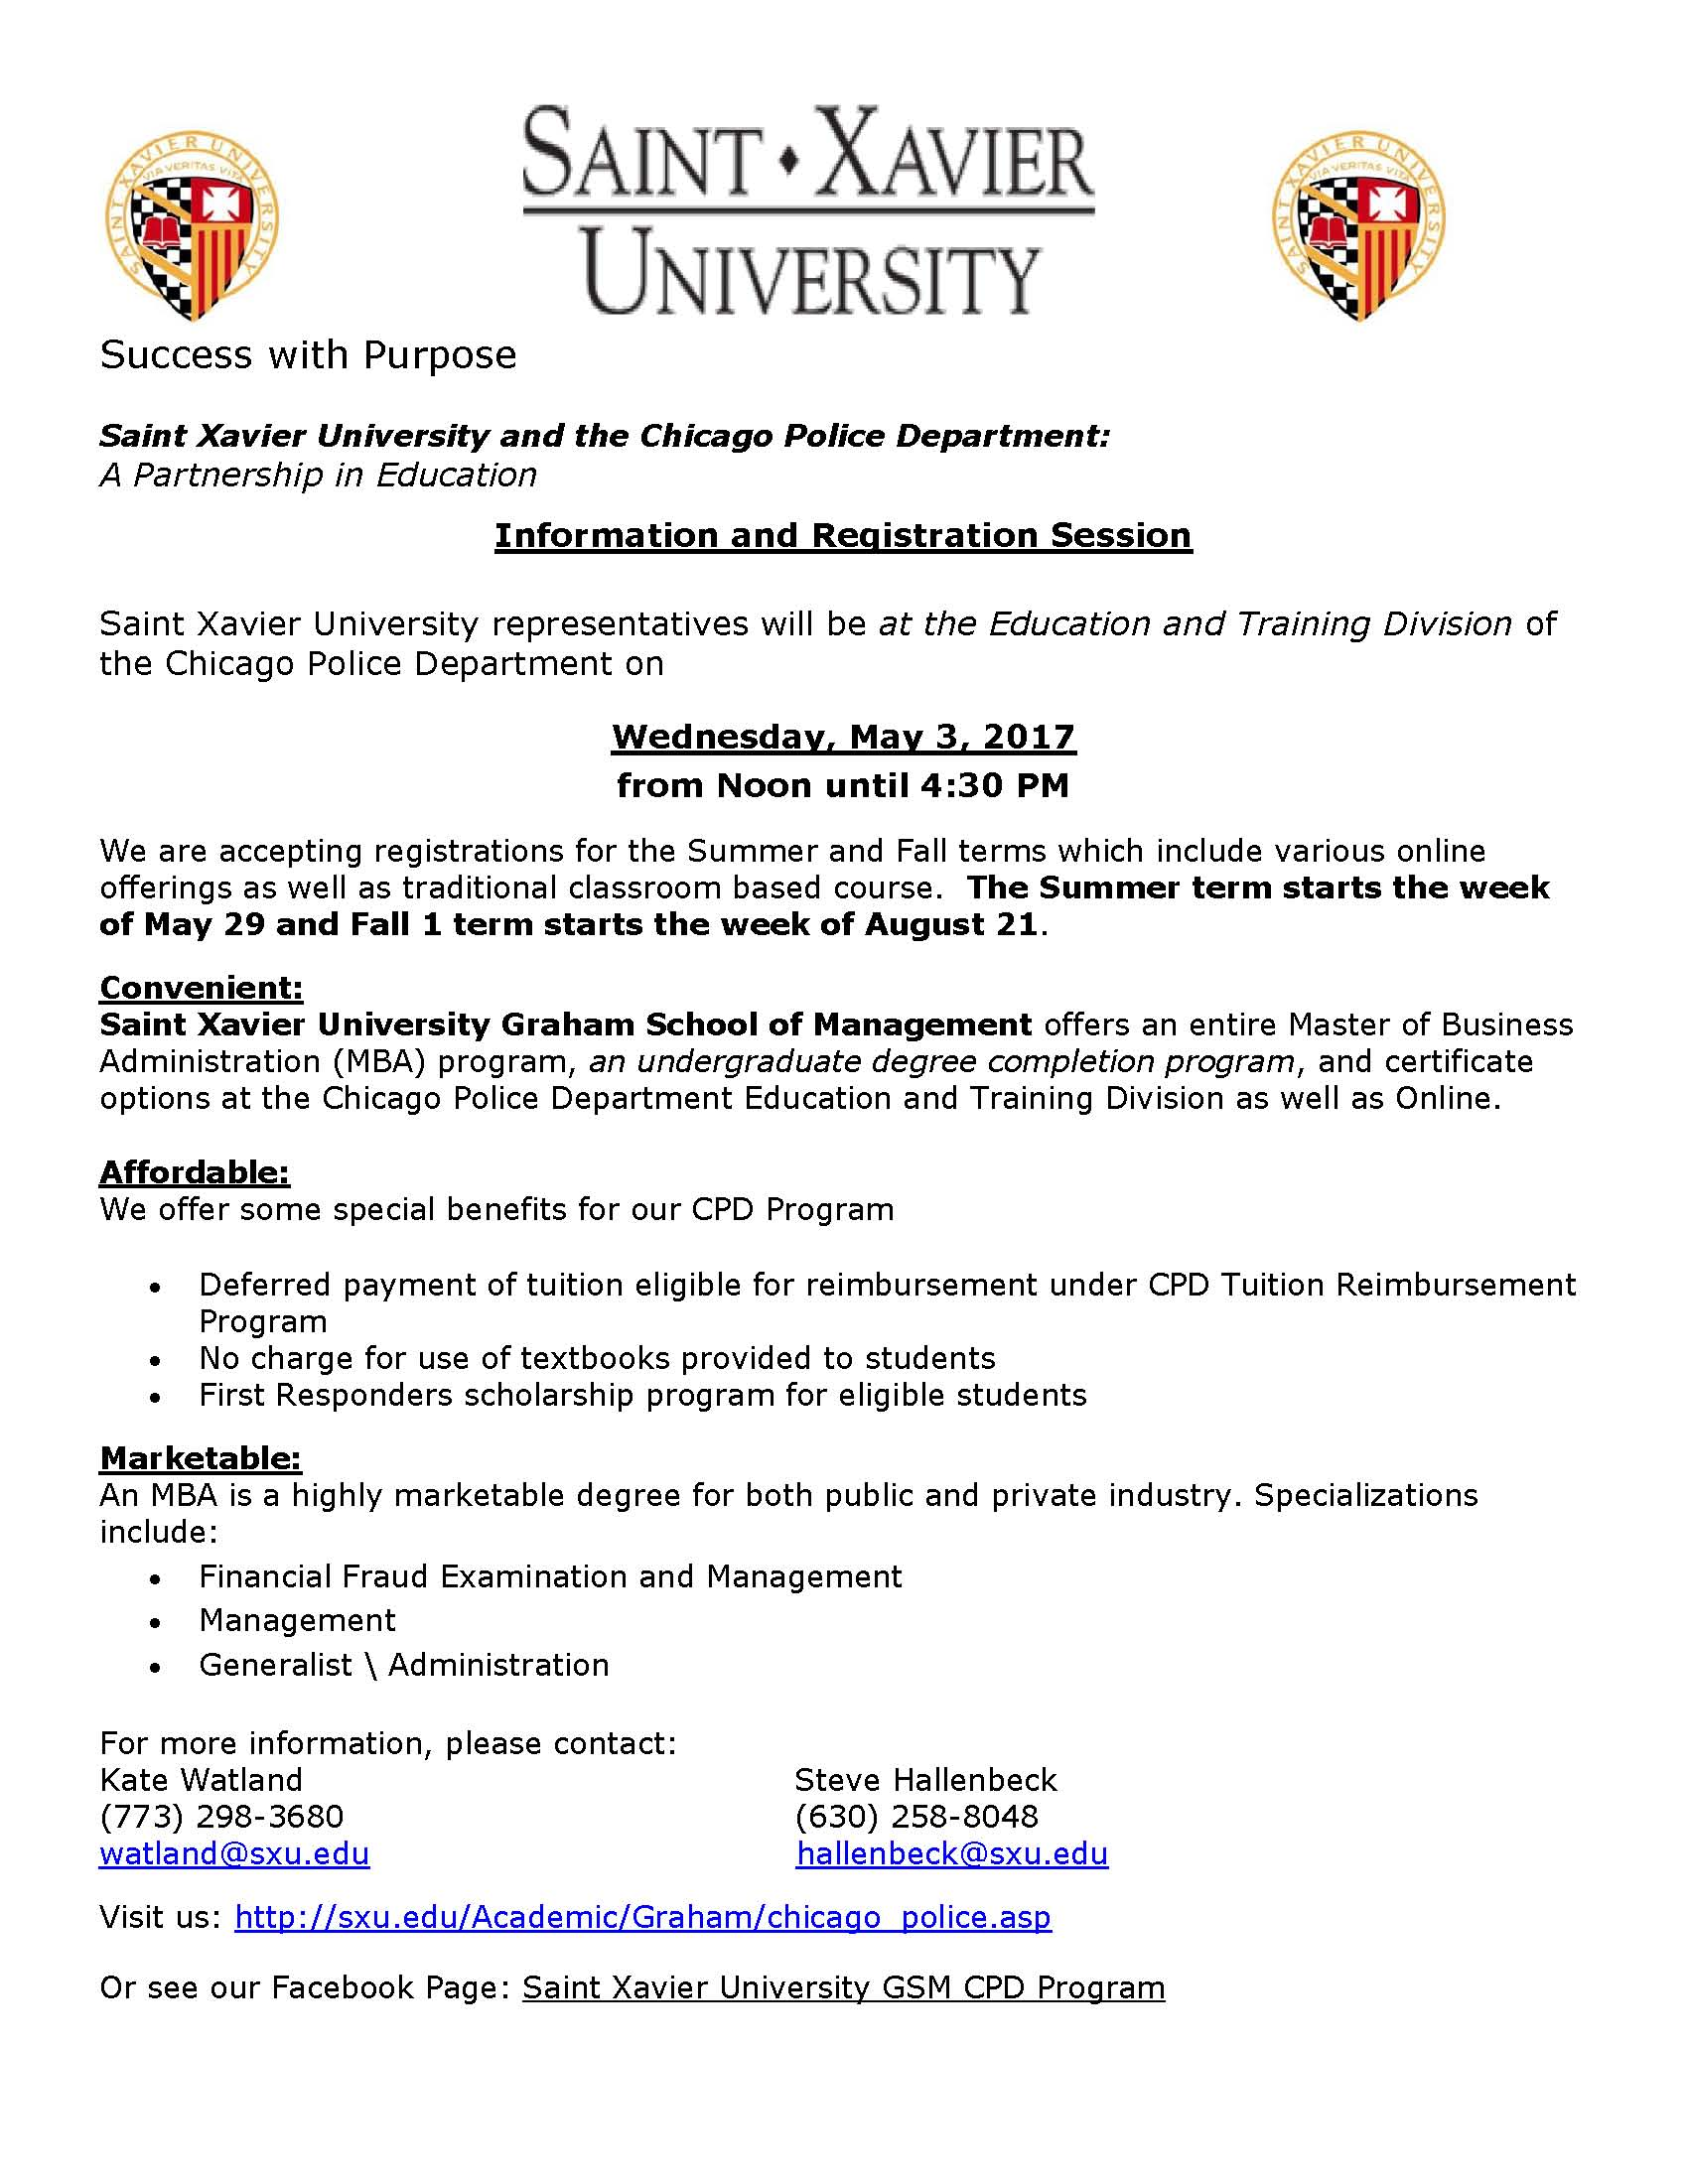 Information Session May 3_2017.jpg